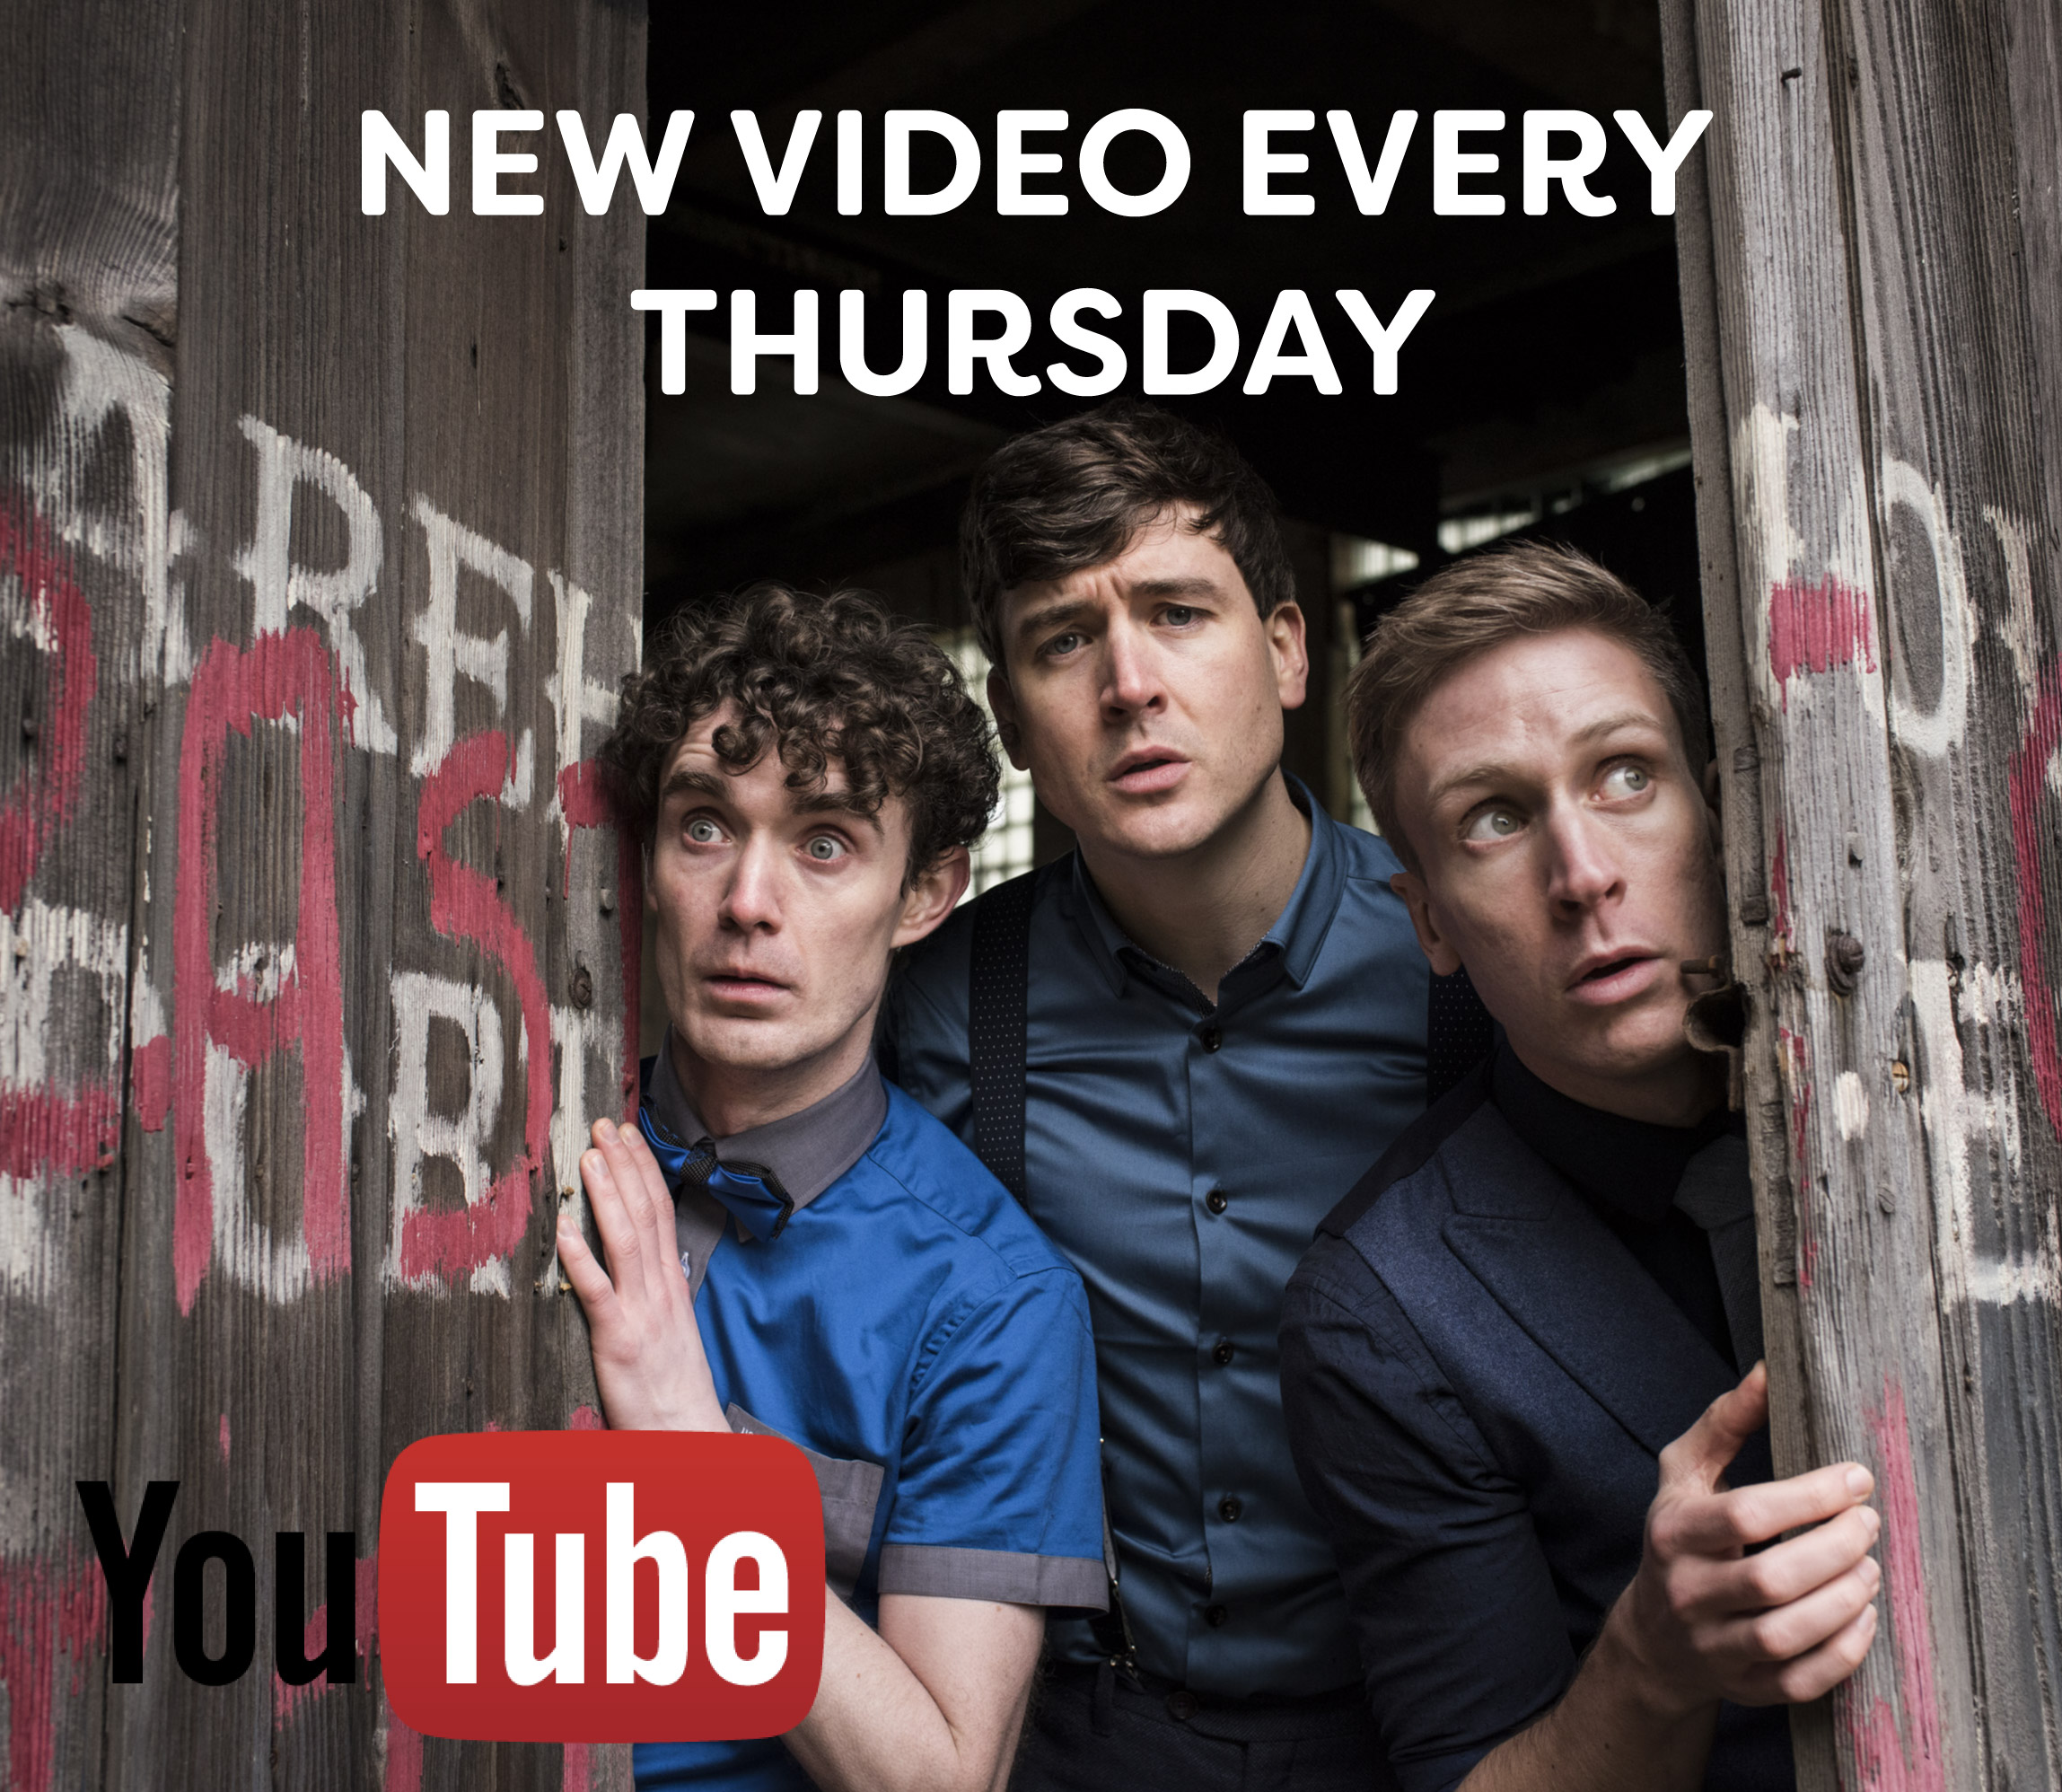 We have a new video on YouTube every Thursday. -